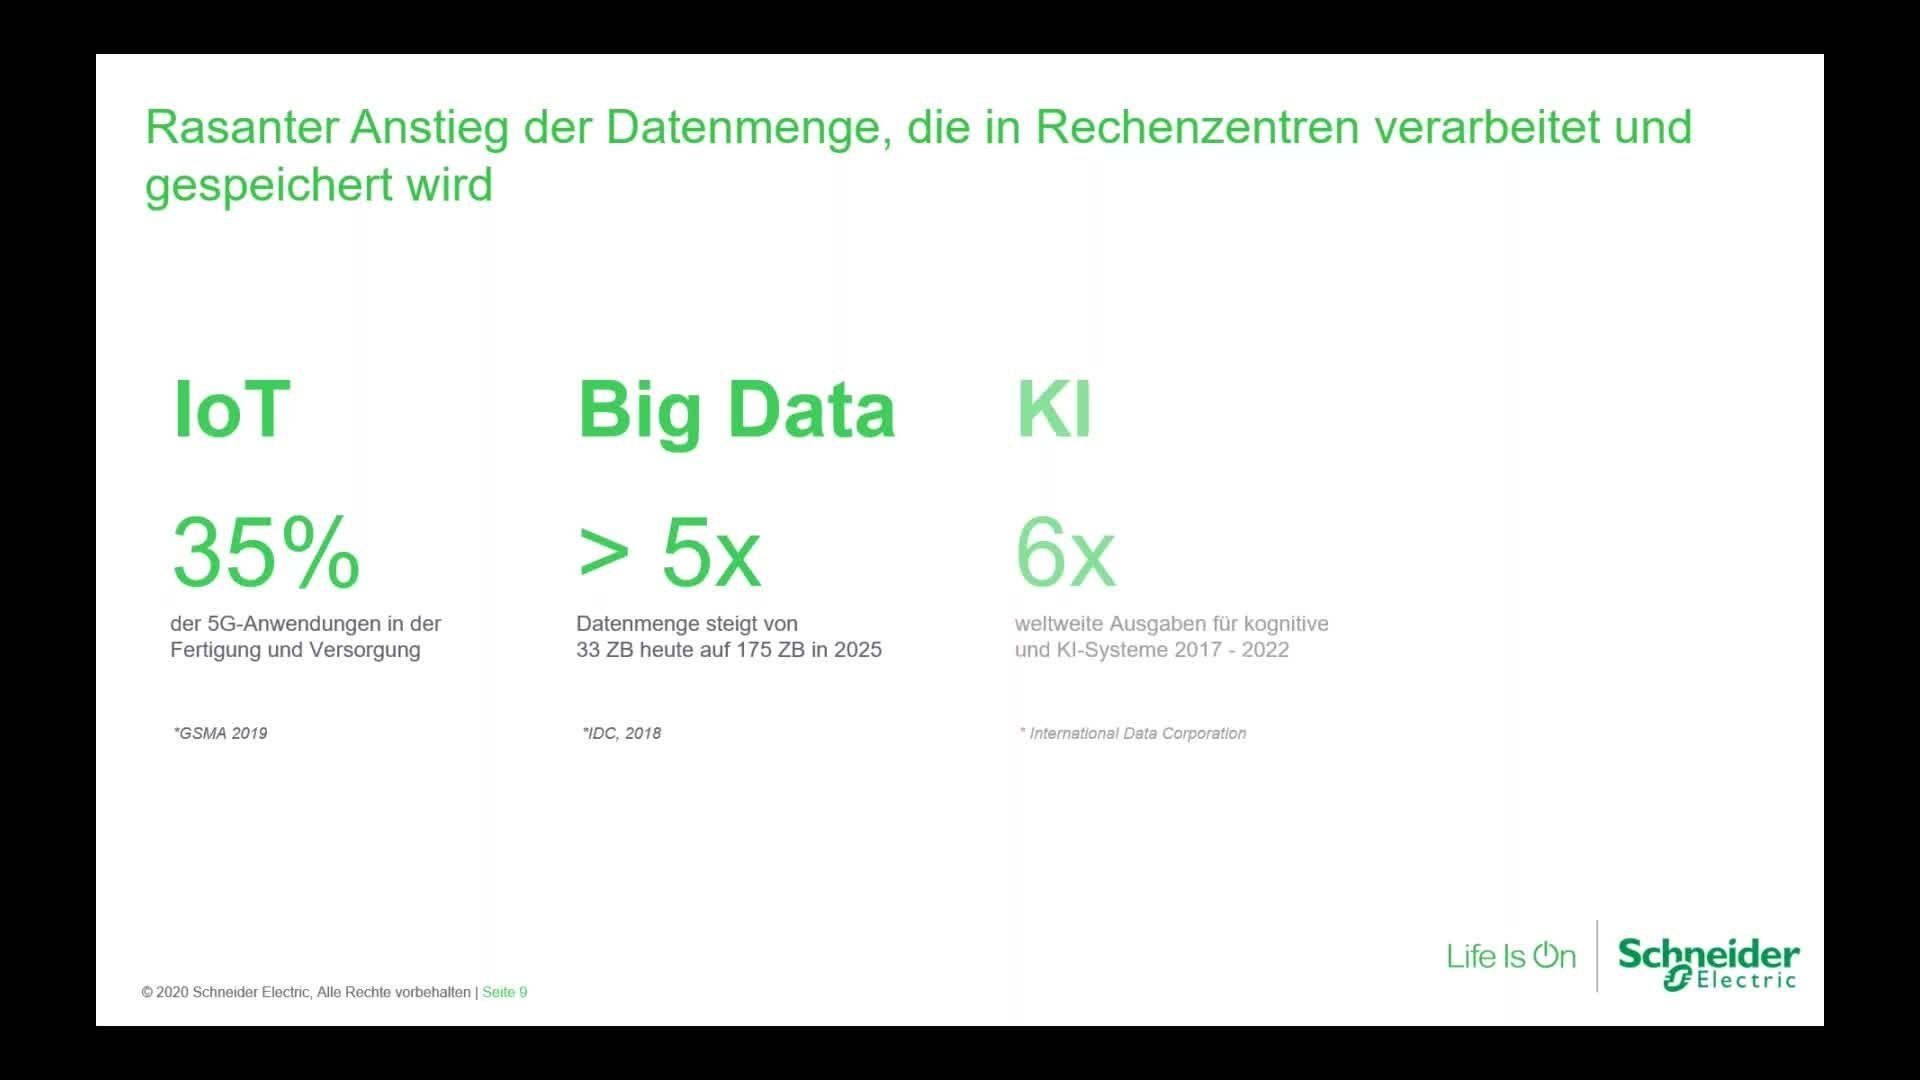 Web-Seminar Schneider Electric 21.10.2020